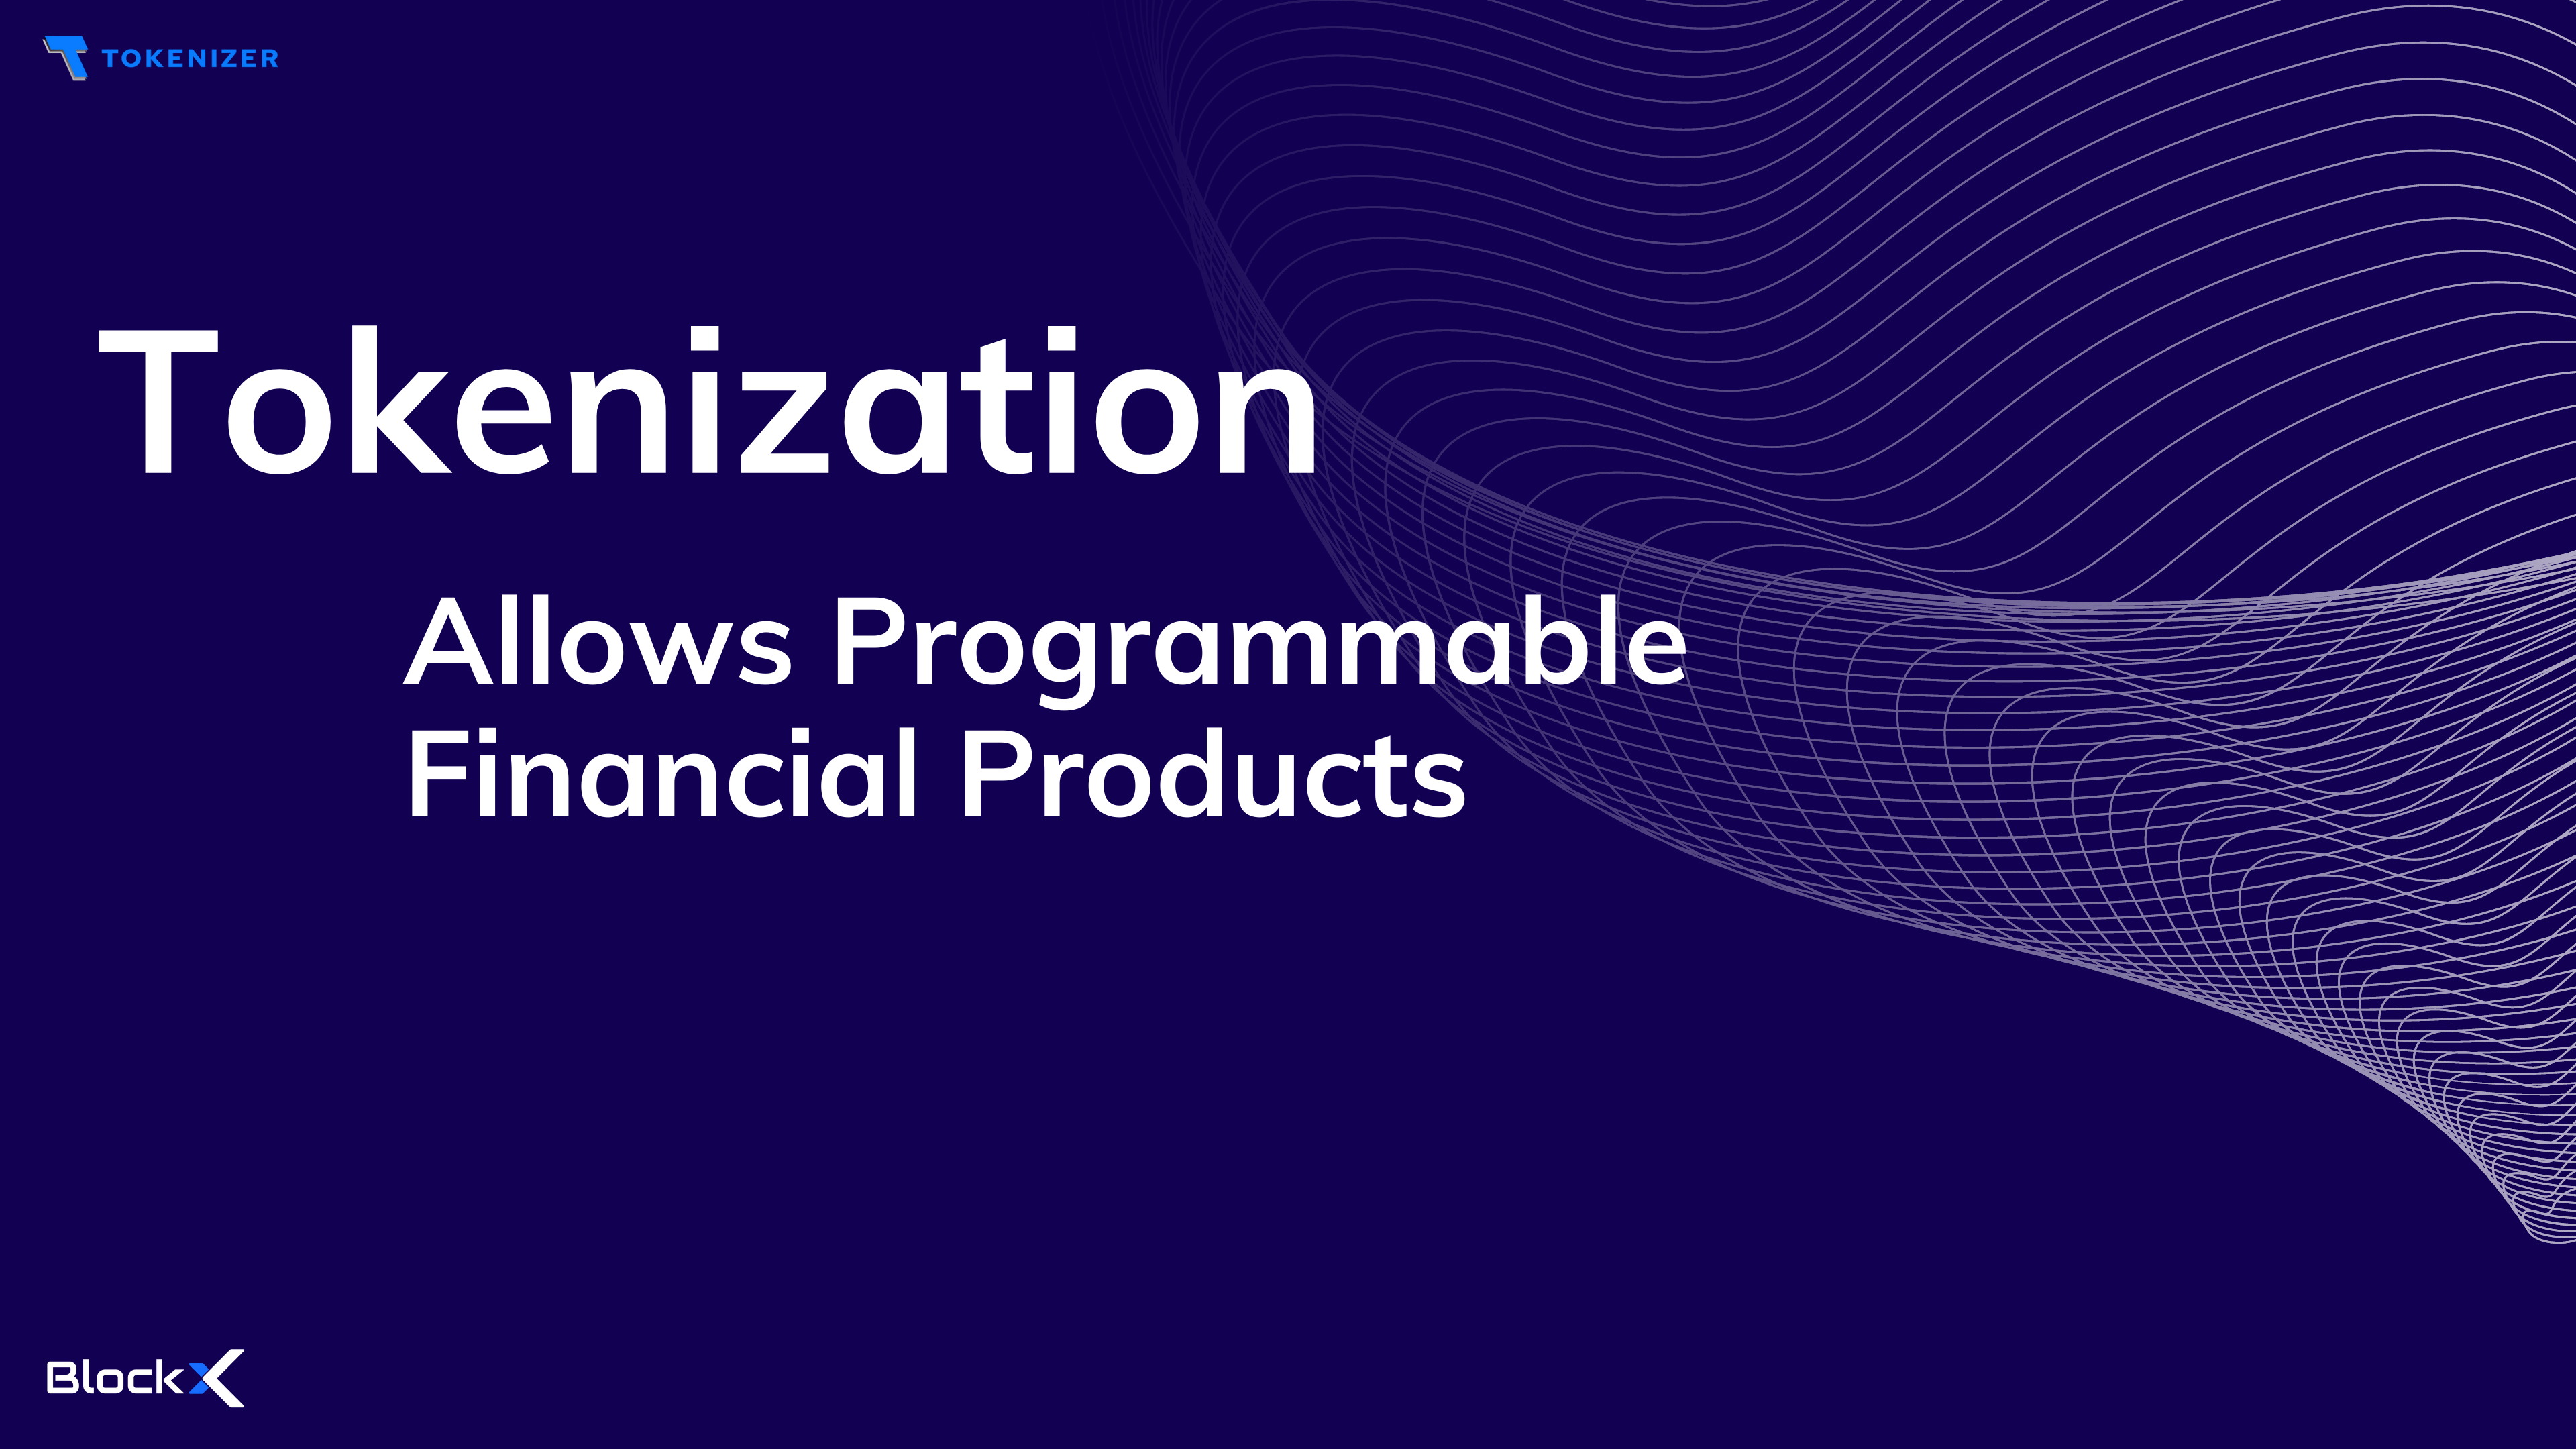 Tokenization: Allows Programmable Financial Products